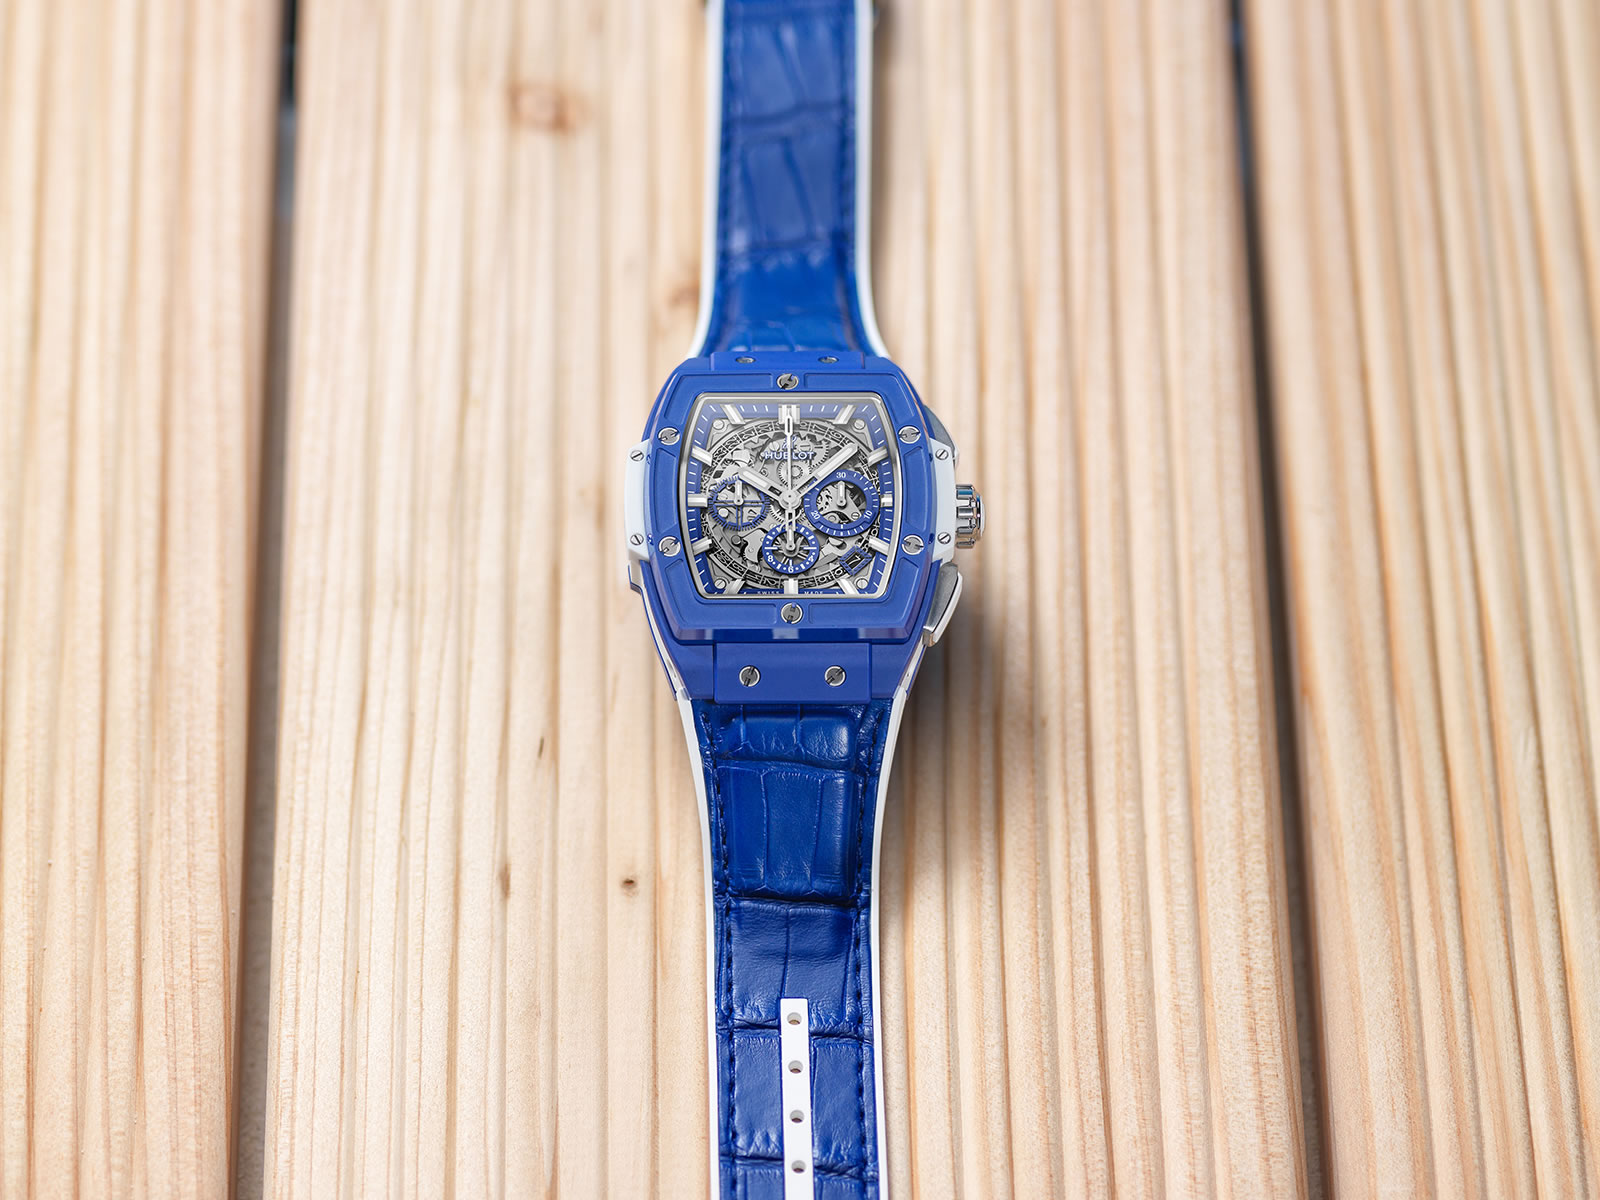 641-ex-5129-lr-hublot-spirit-of-big-bang-blue-7-.jpg